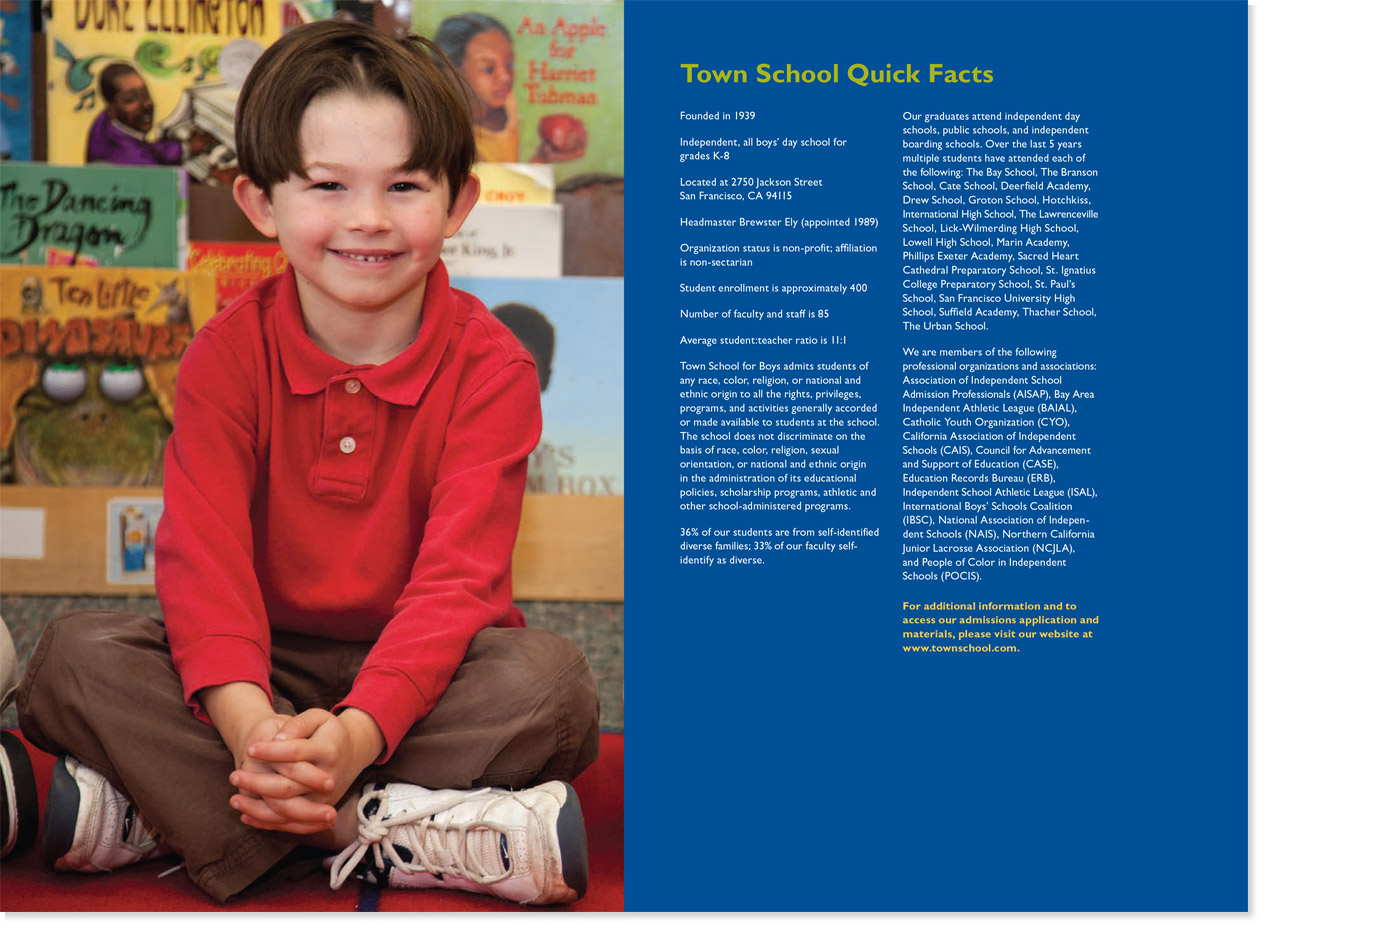 Town School for Boys Admissions Viewbook